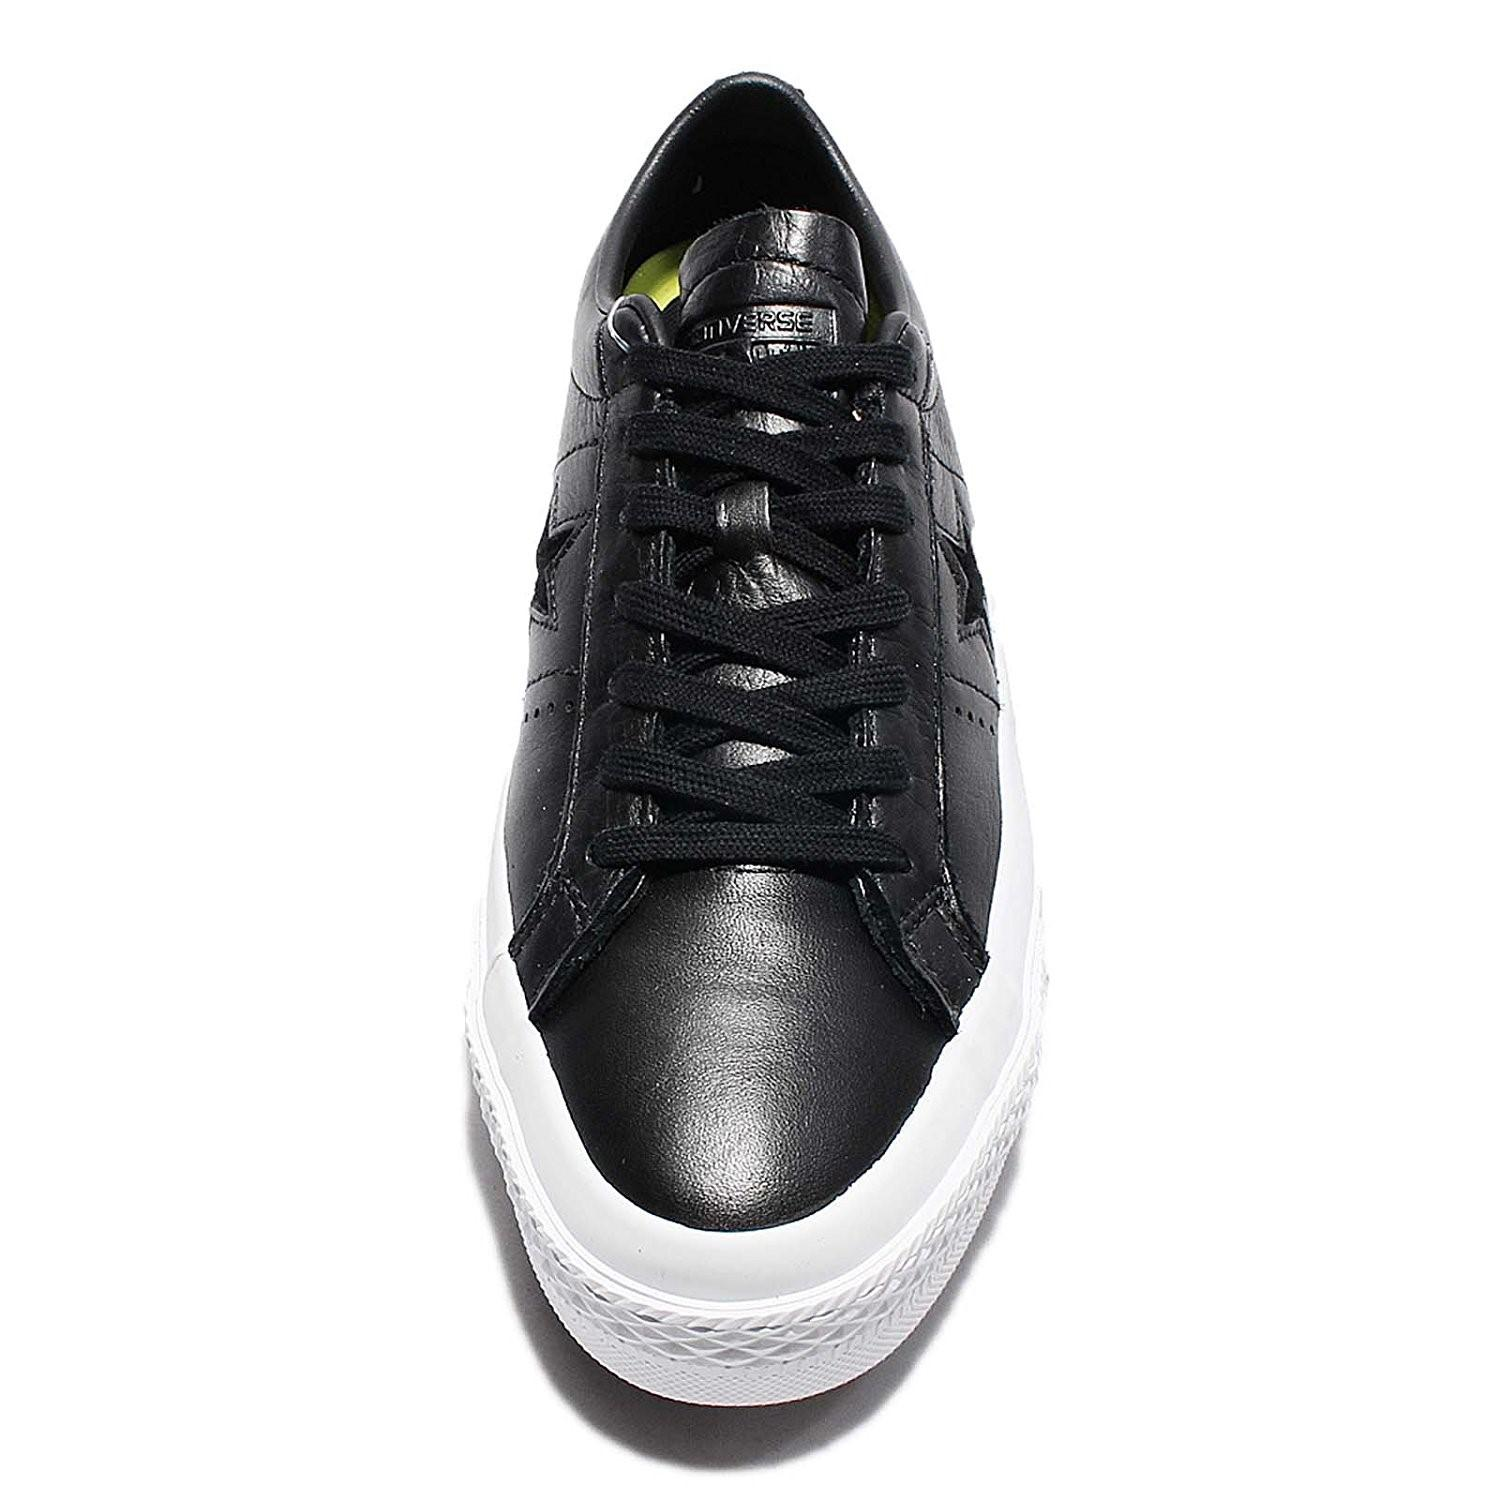 8113cee7d91beb Lyst - Converse 155548c  One Star Ox Black White Black Leather Shoe ...